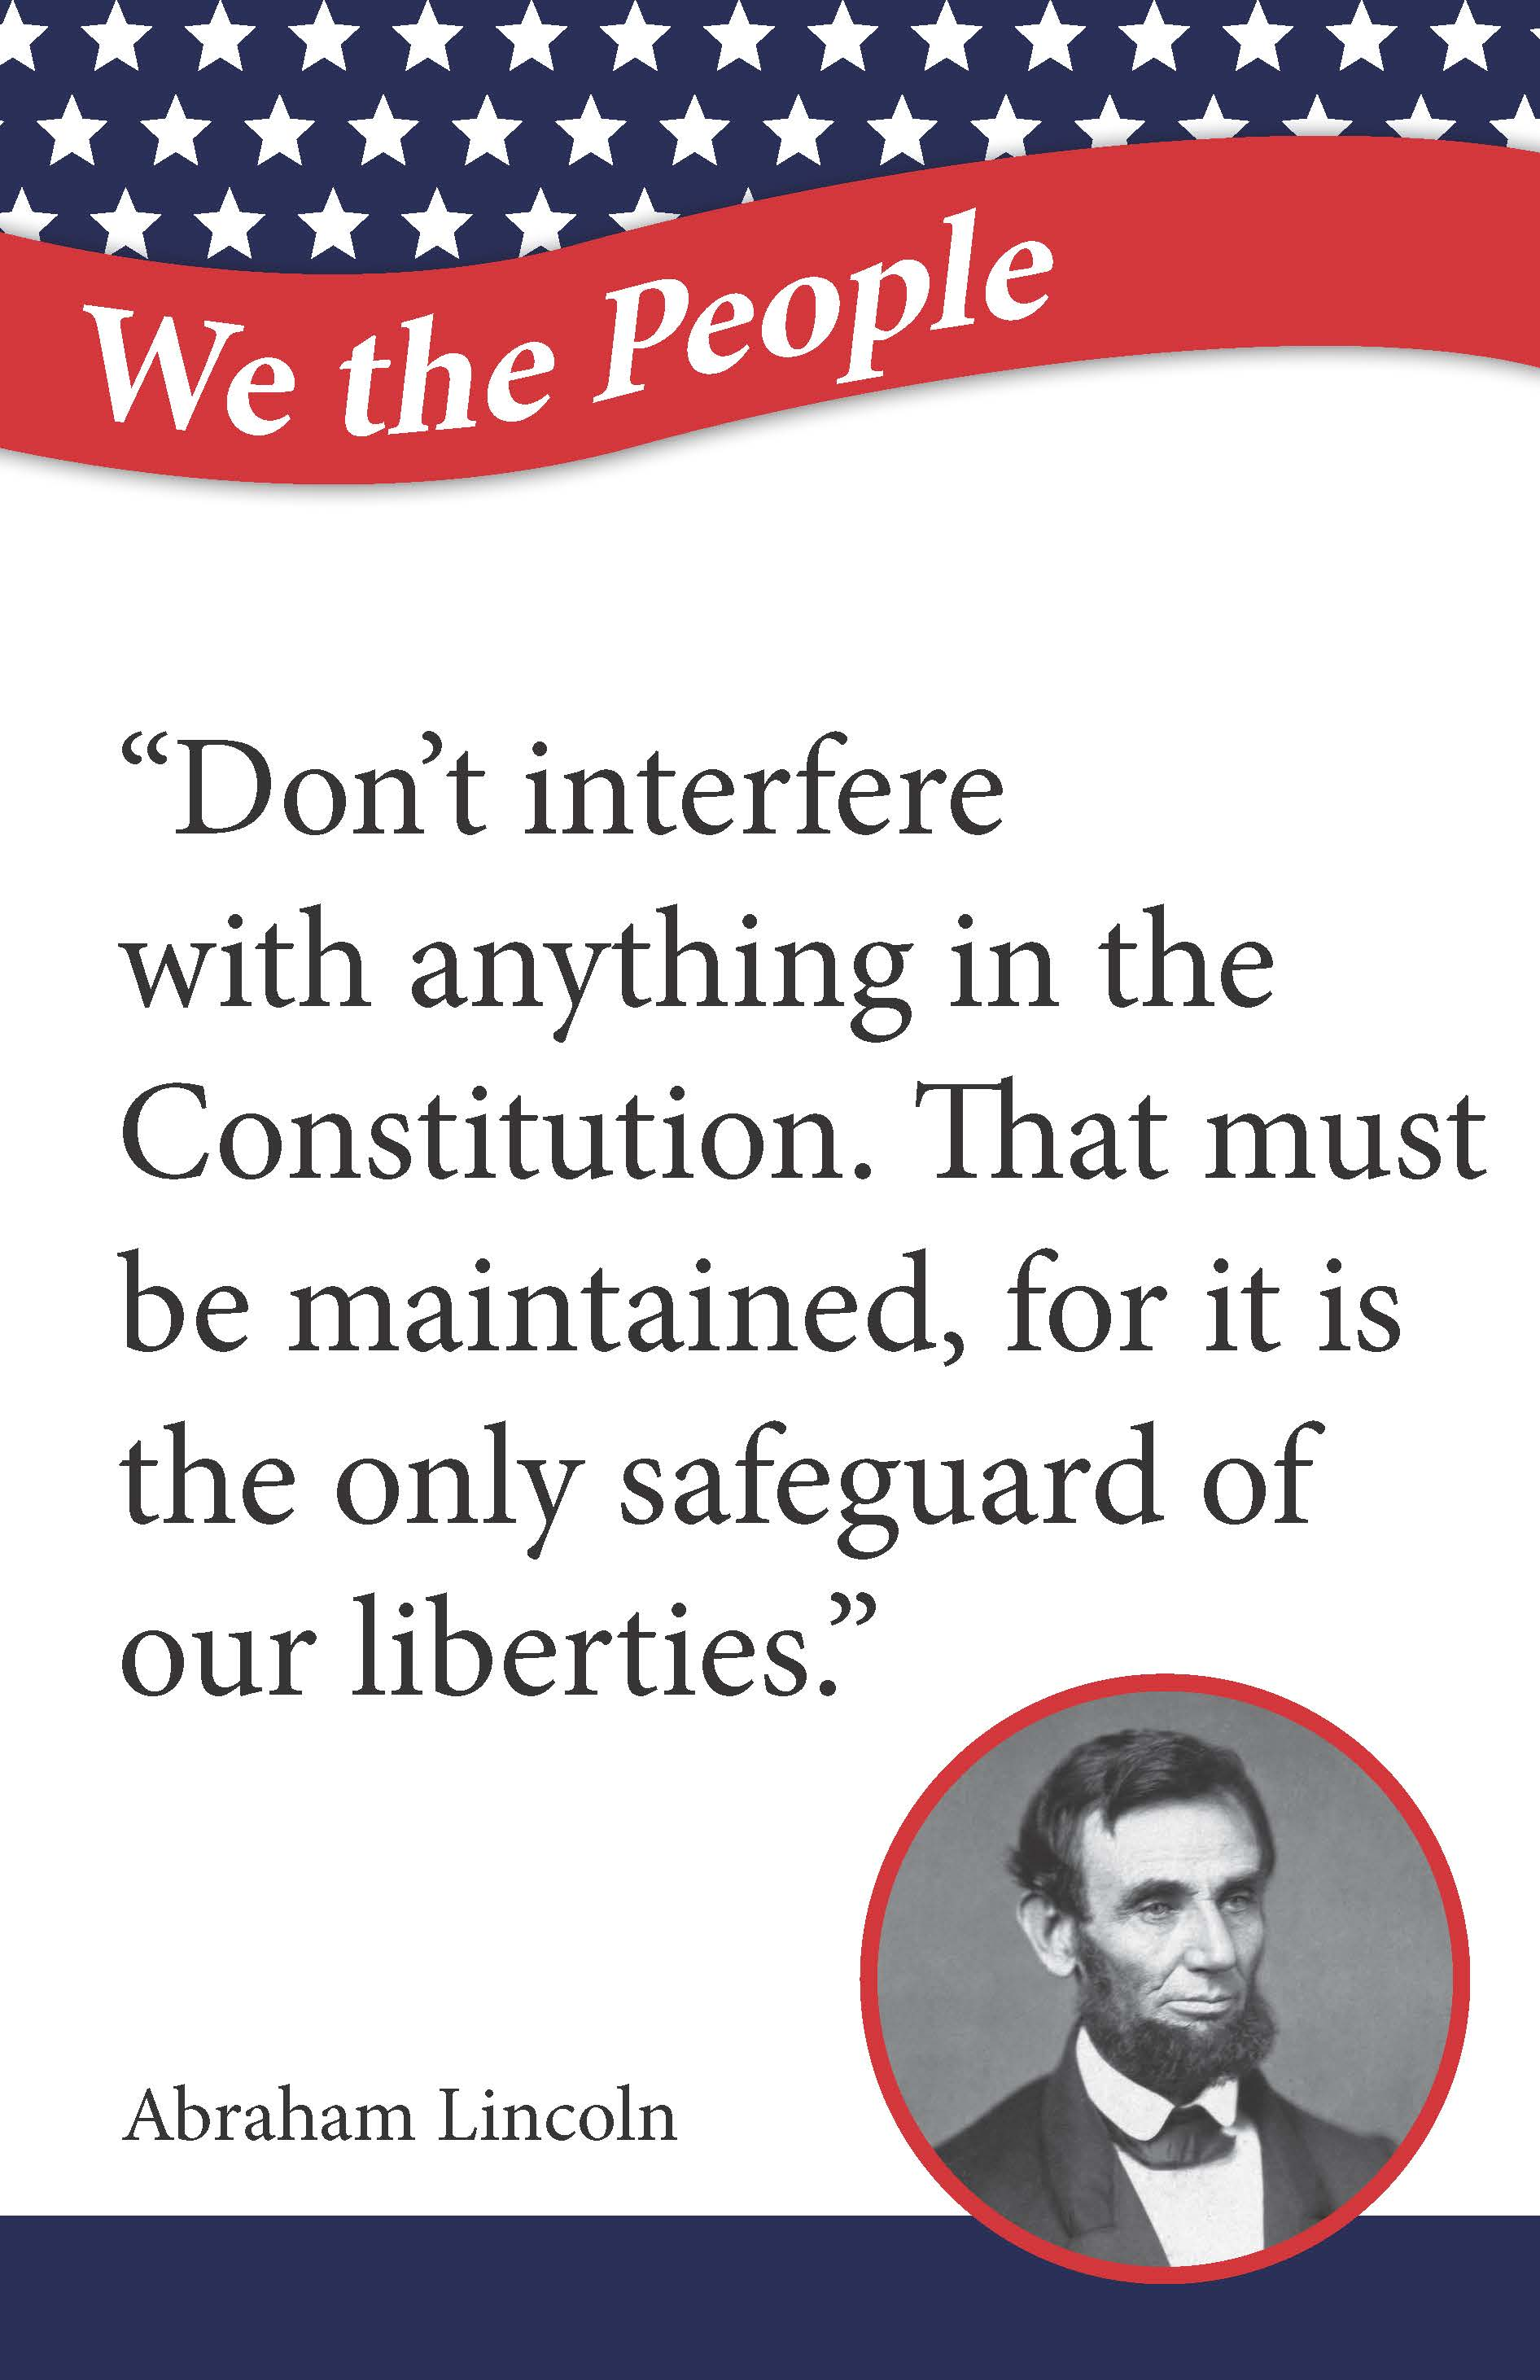 constitution_day_posters_11x17_Page_8